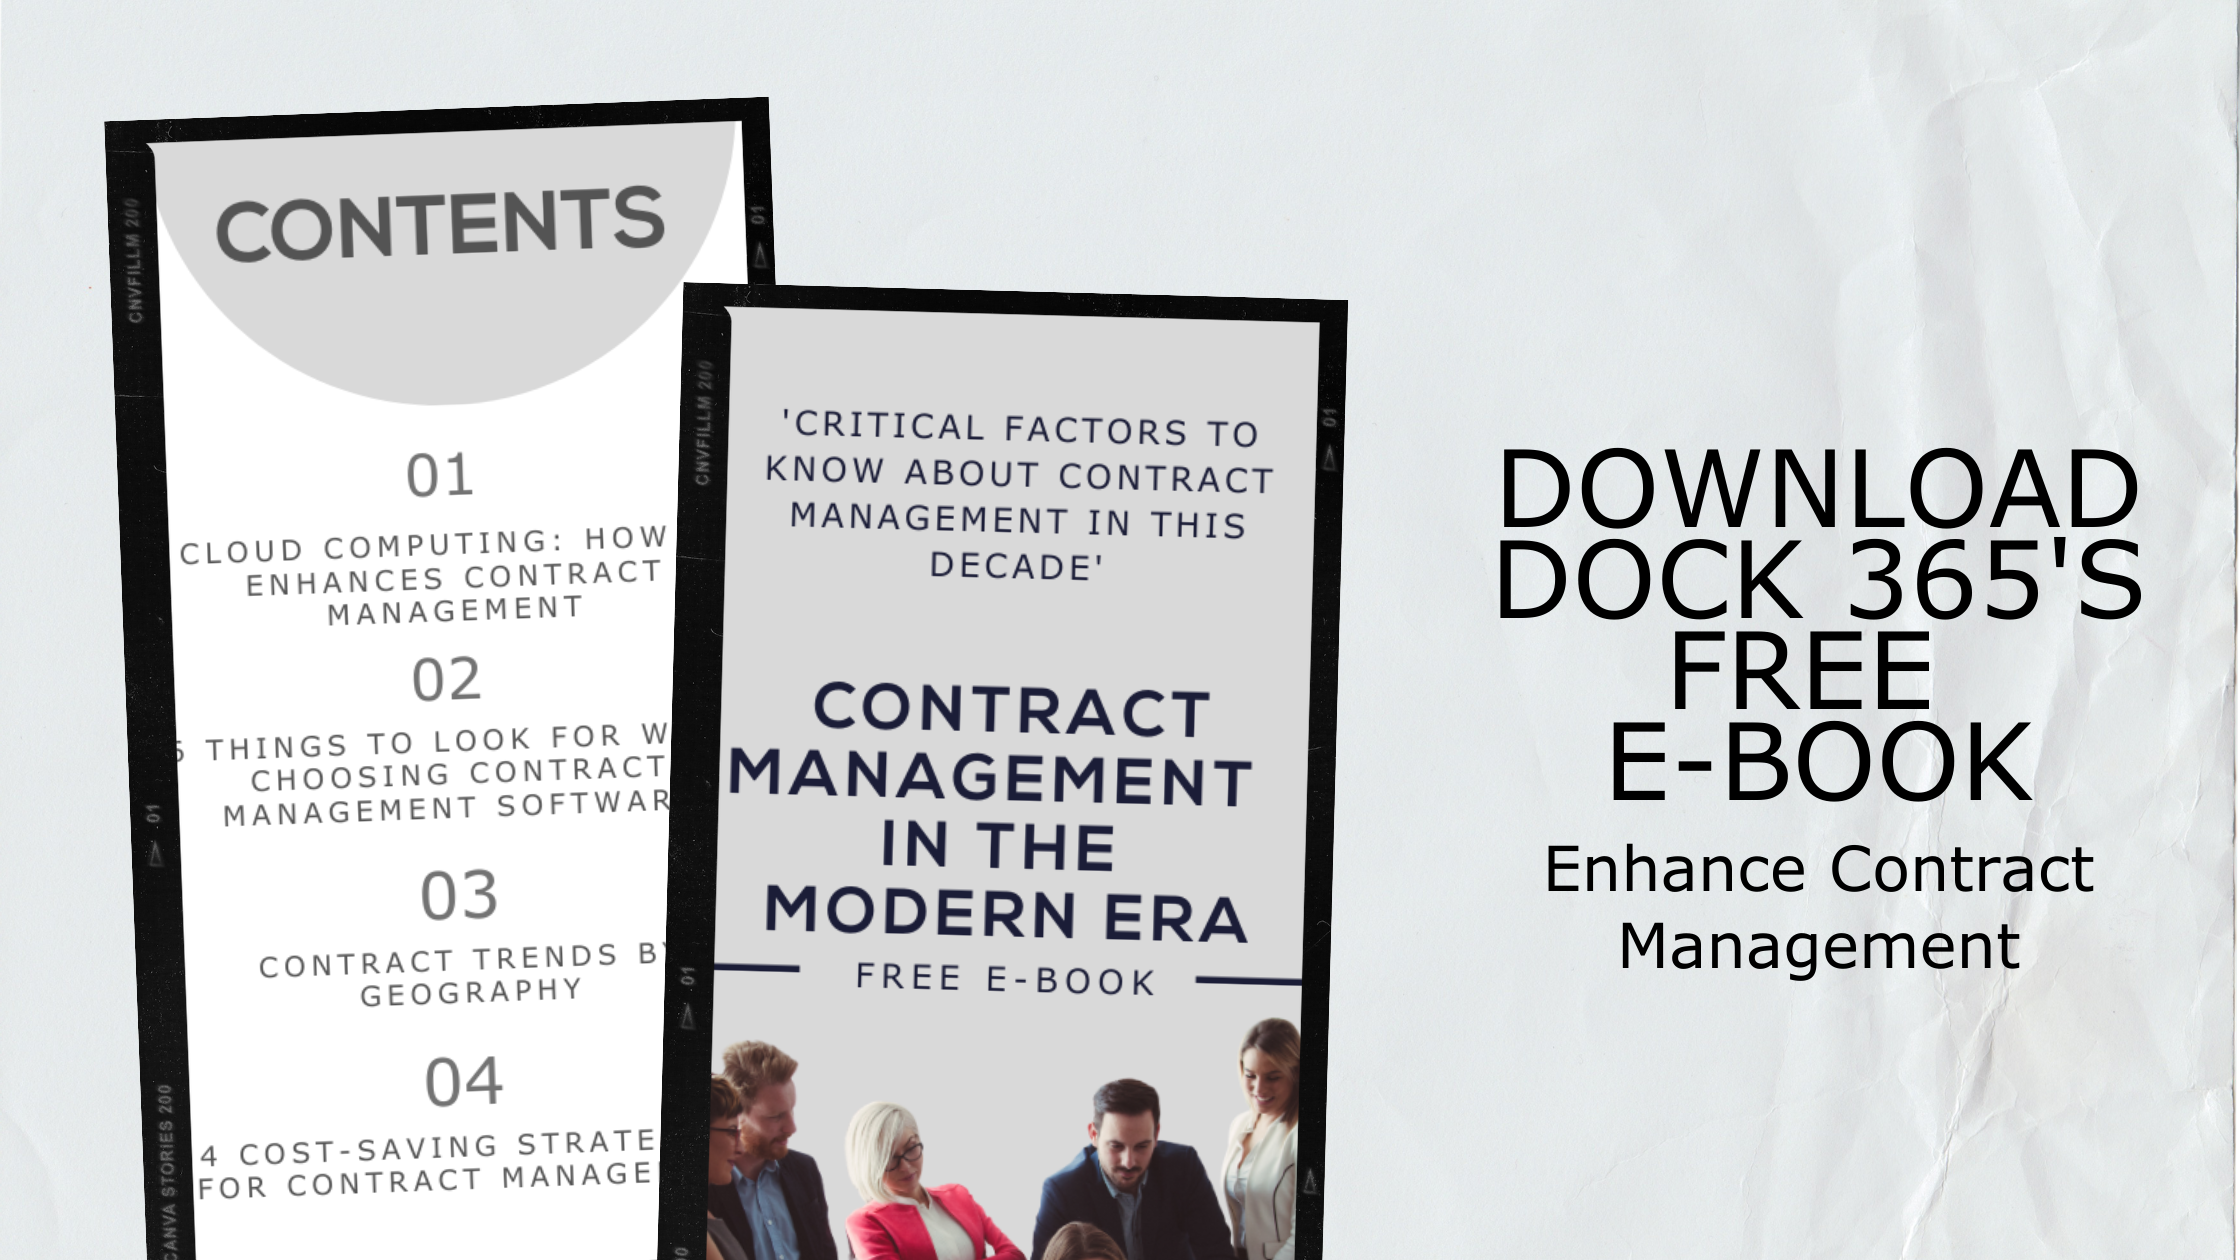 E-book featured image - CONTRACT MANAGEMENT IN THE MODERN ERA (1)